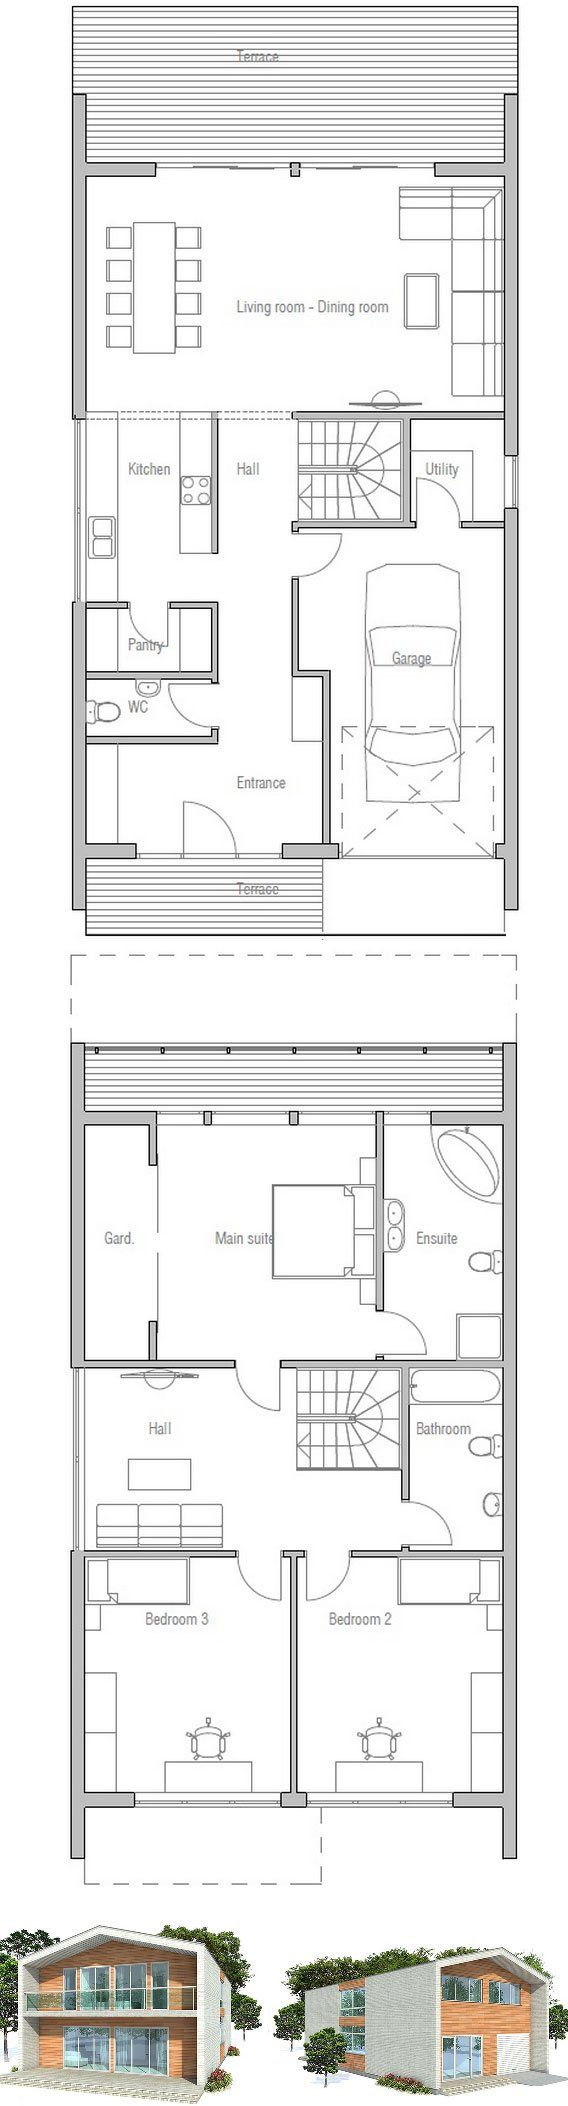 25 best ideas about narrow house plans on pinterest narrow lot house plans shotgun house and small home plans